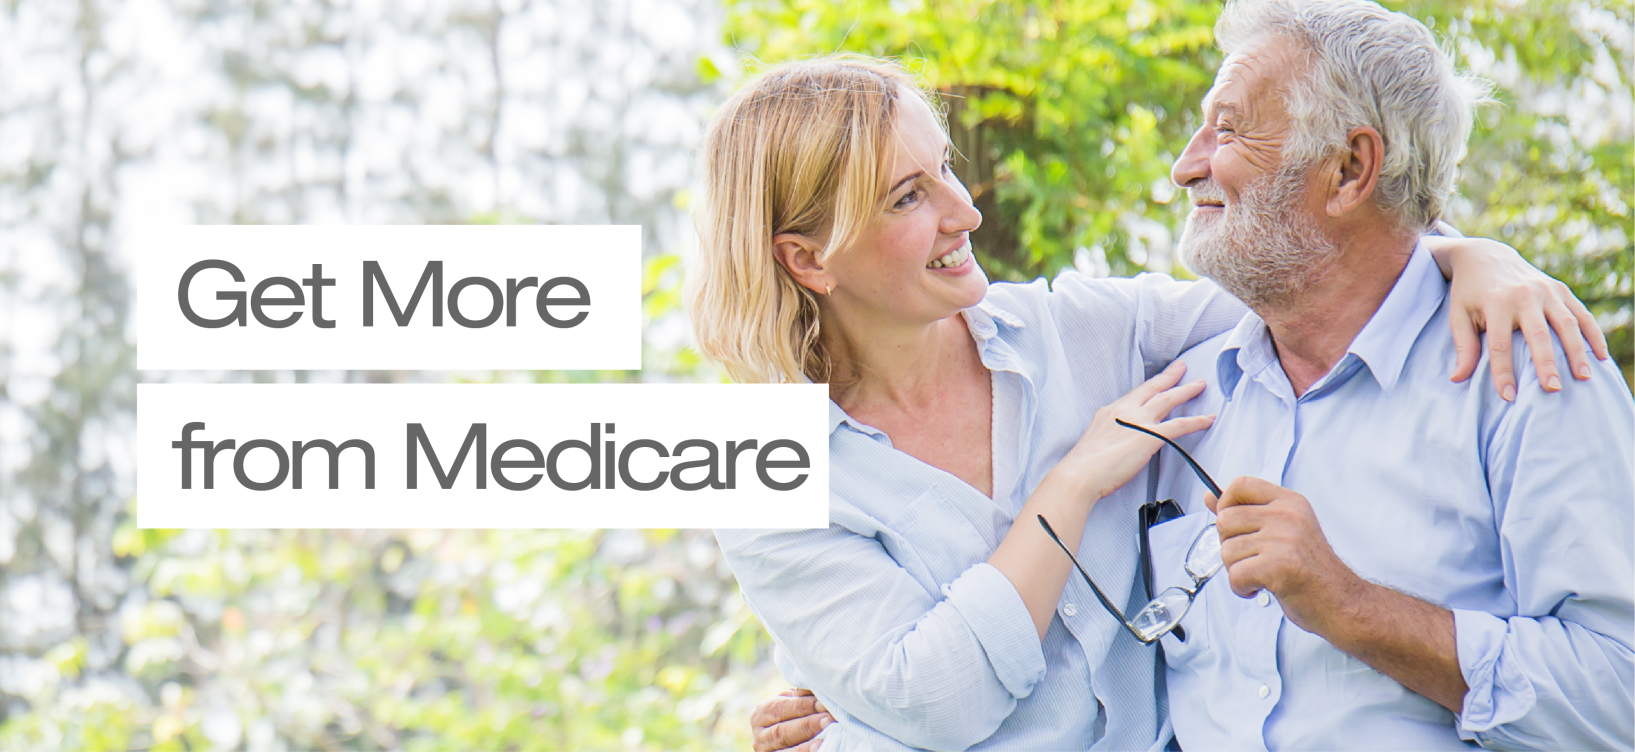 get more from medicare